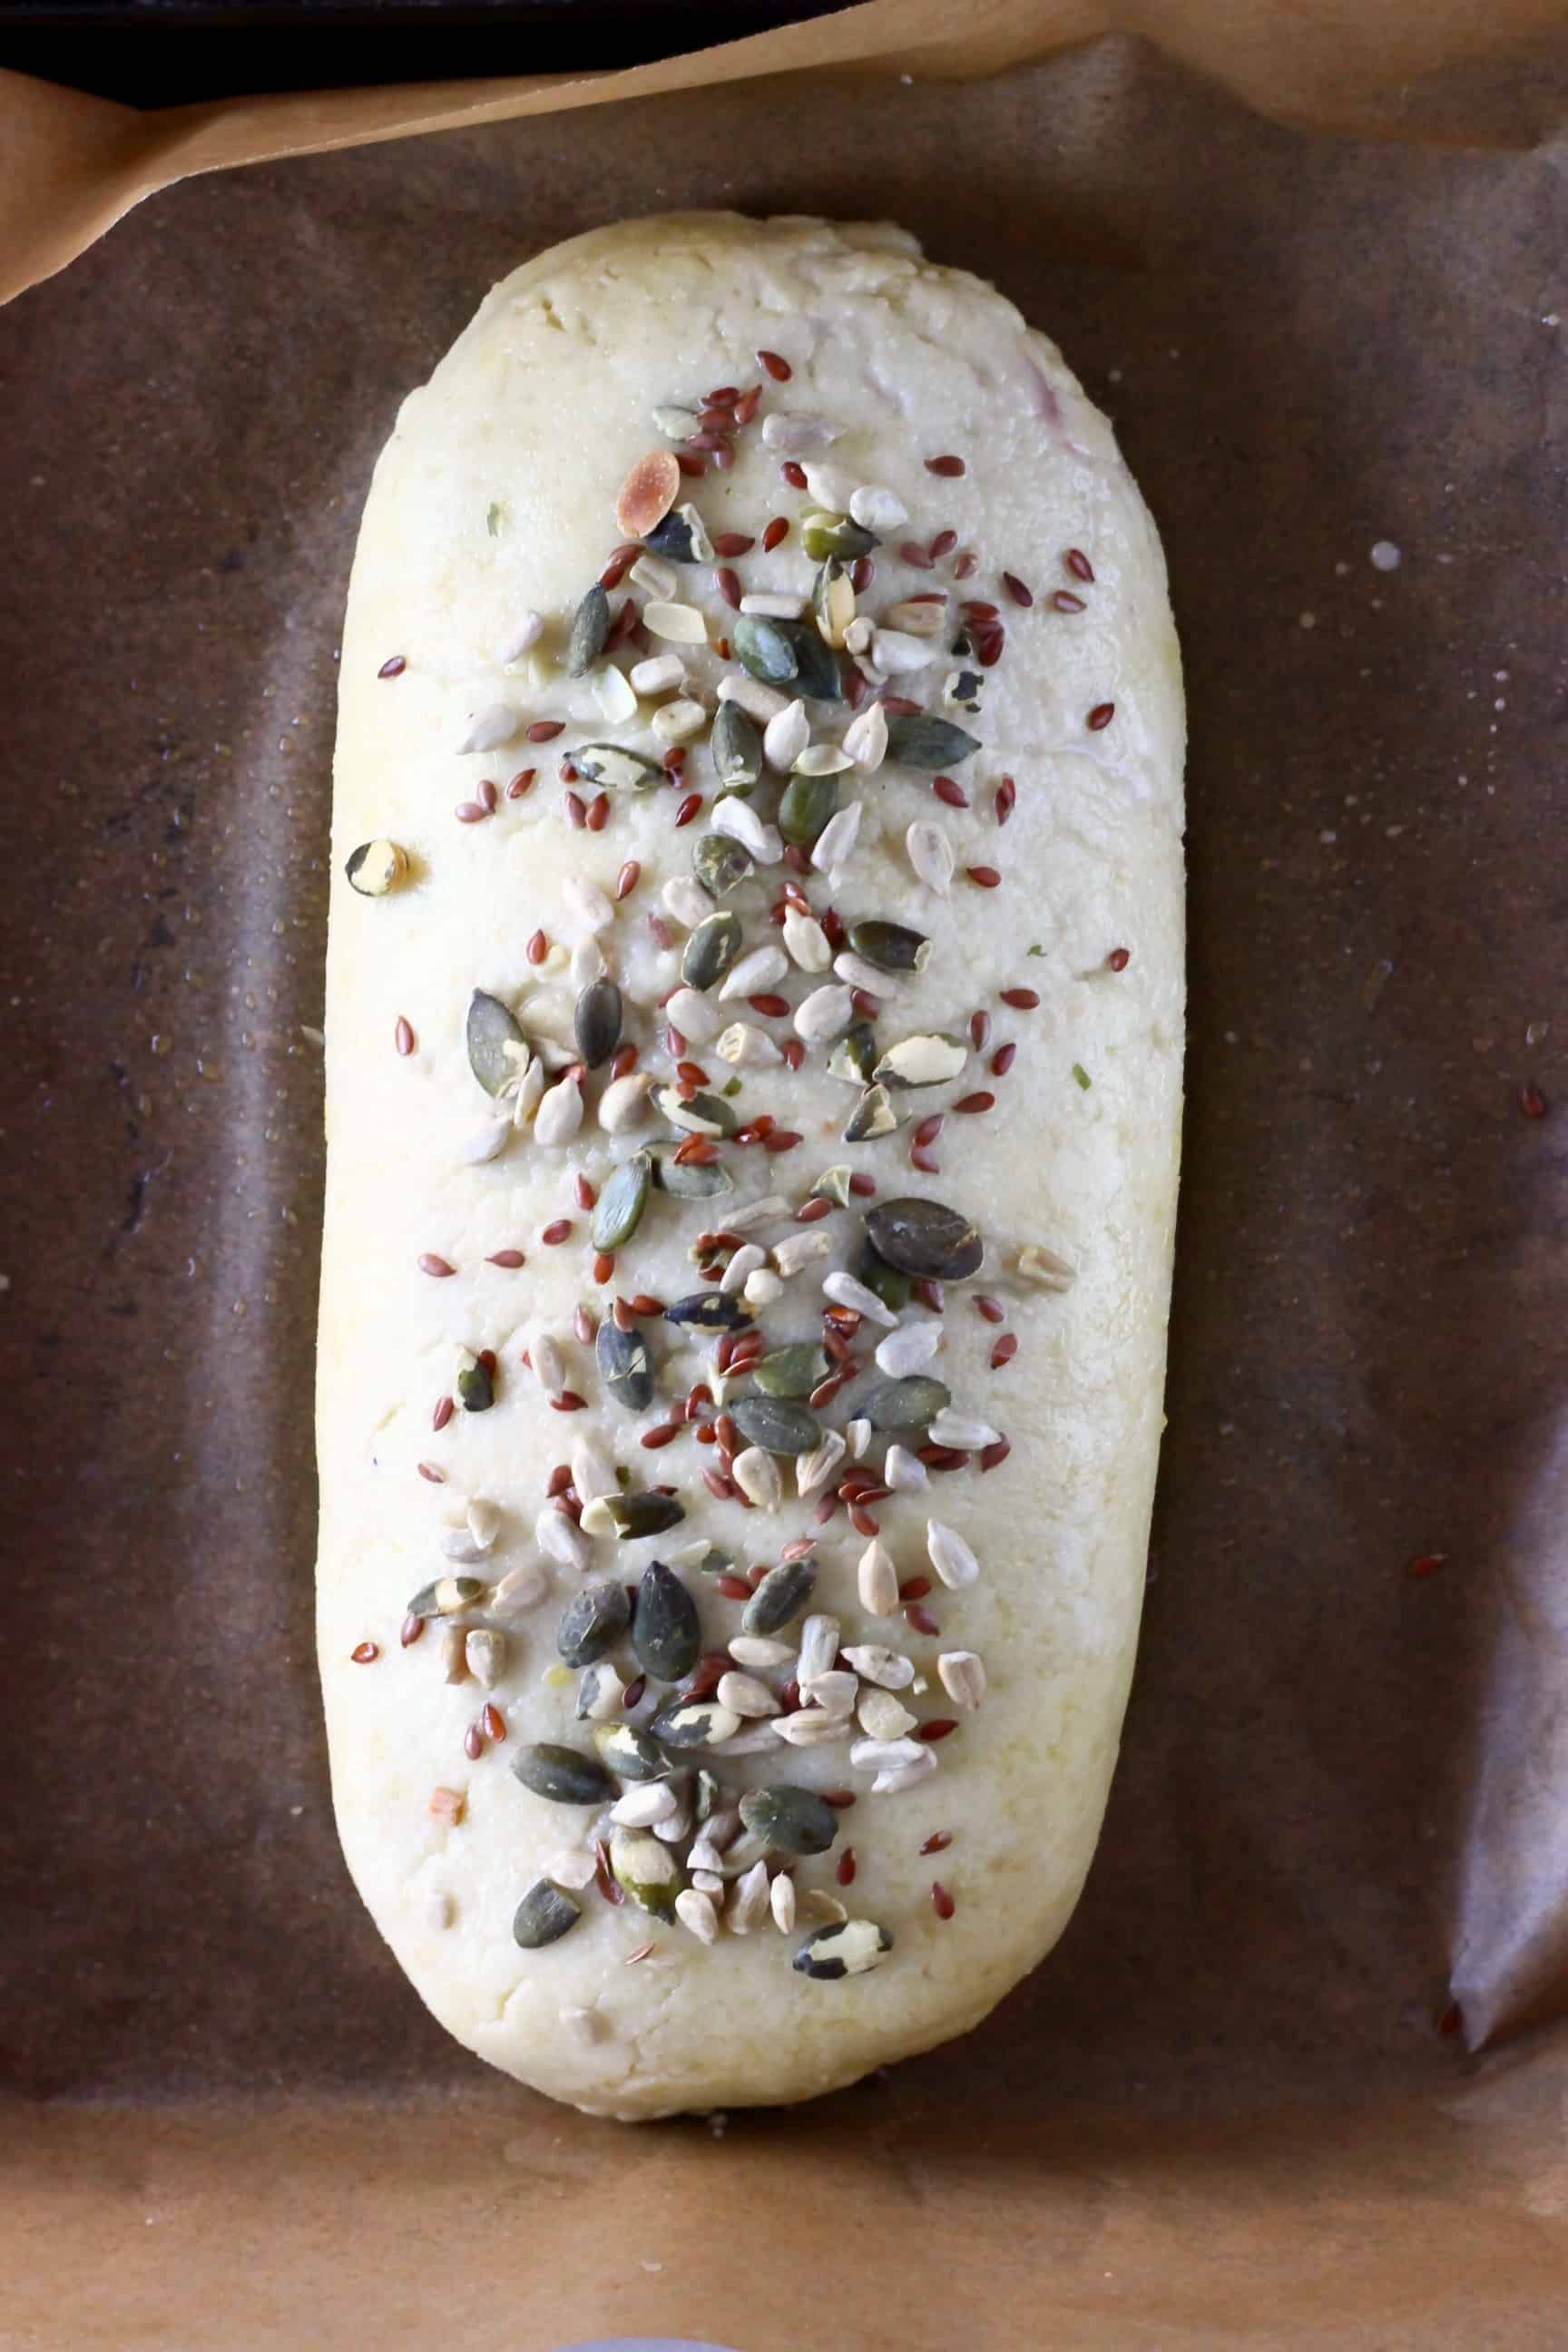 Raw vegan wellington sprinkled with mixed seeds on a baking tray